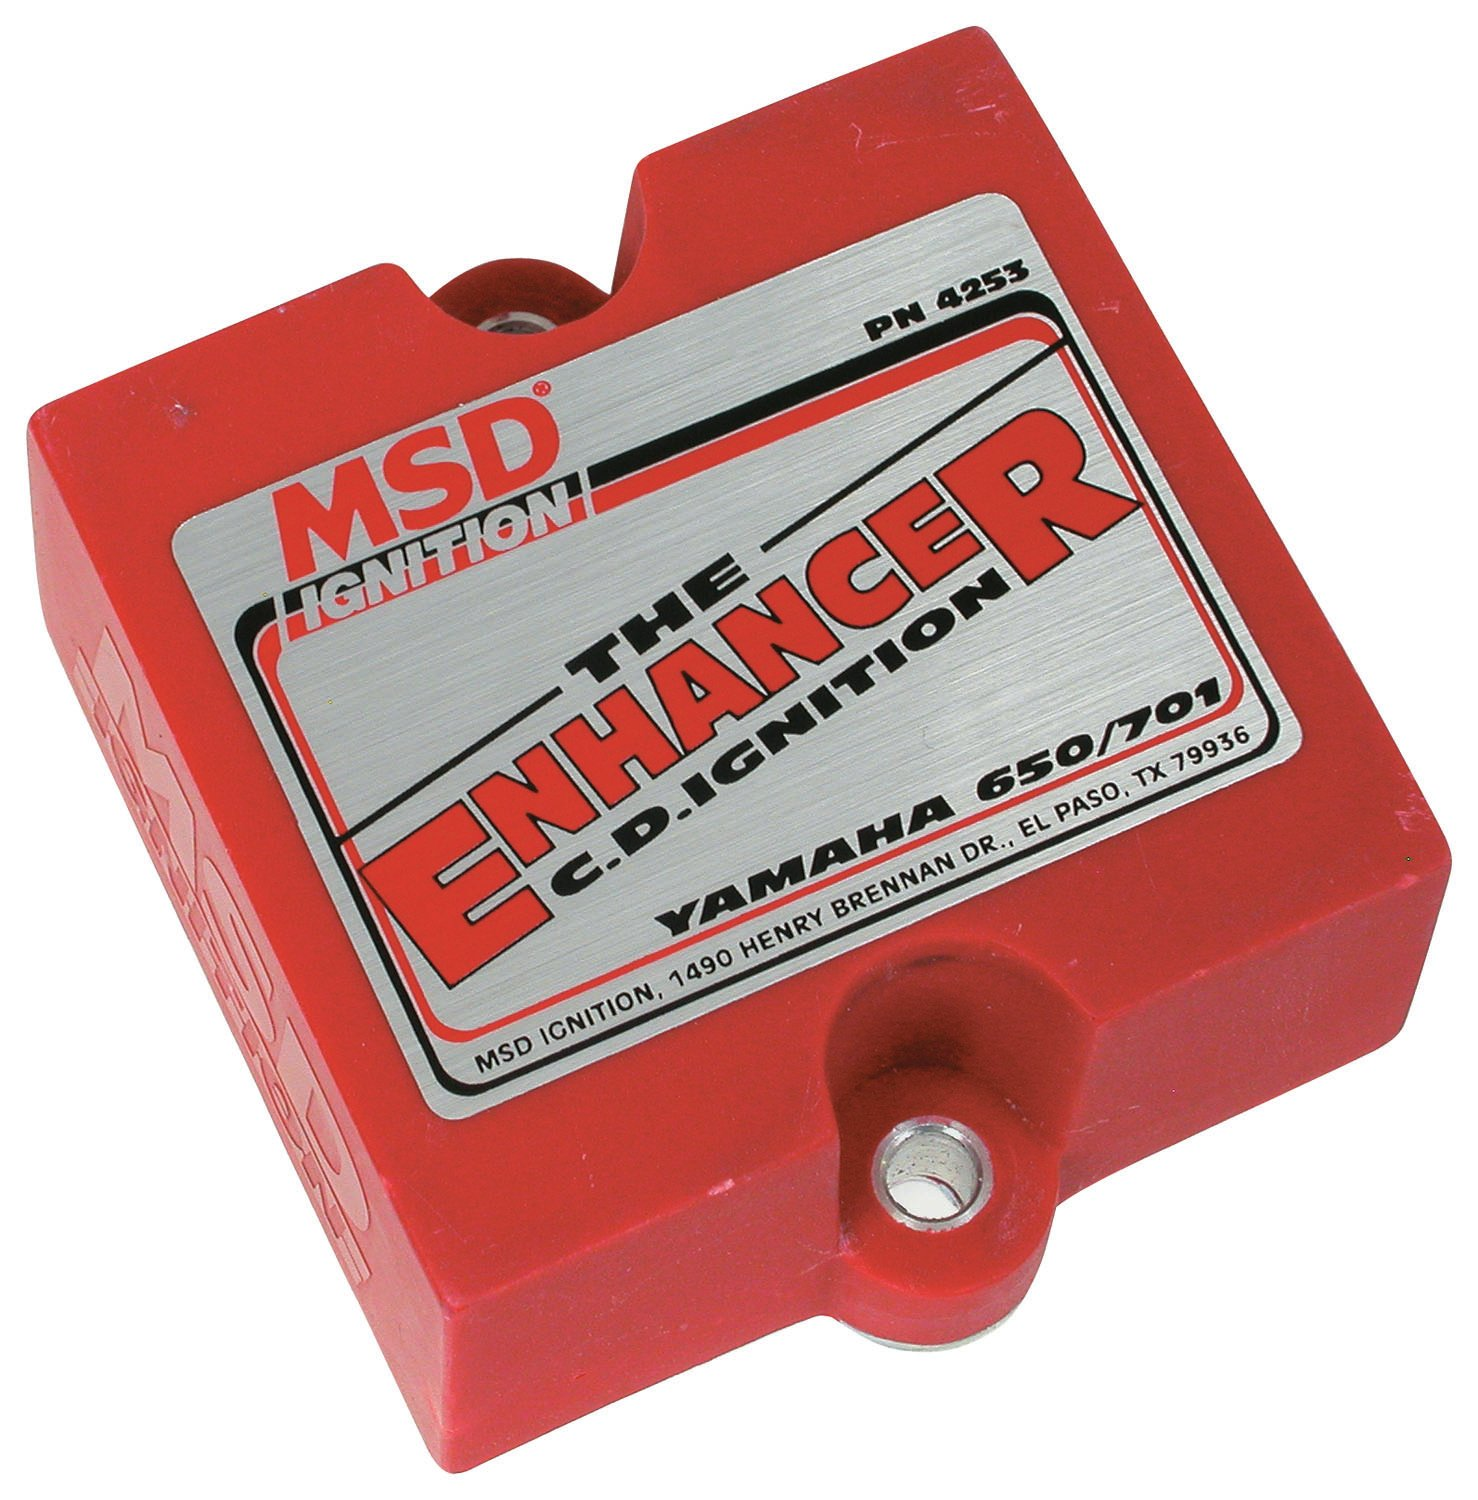 4253 powersports 4253 enhancer ignition, 650 701 yamaha msd yamaha 701 msd enhancer wiring diagram at nearapp.co